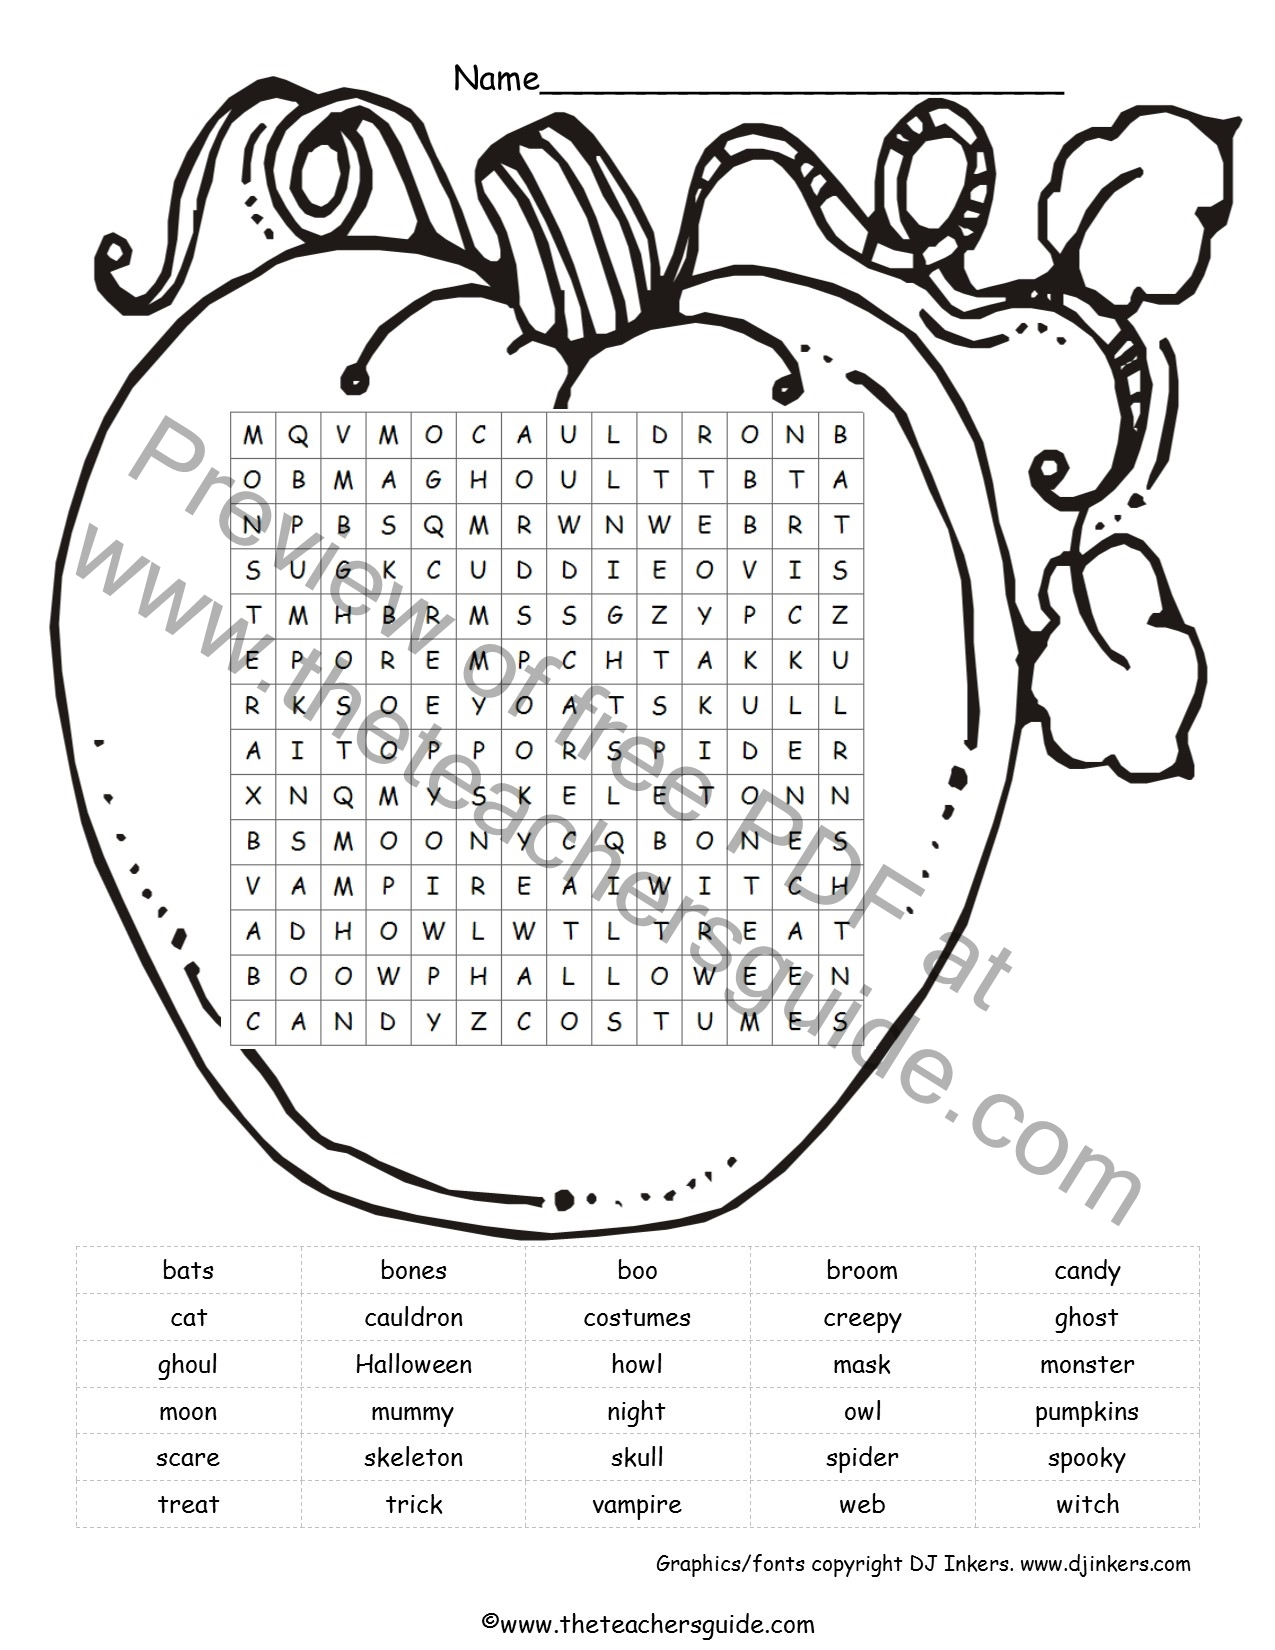 Pumpkins Lesson Plans Themes Printouts Crafts And Clipart